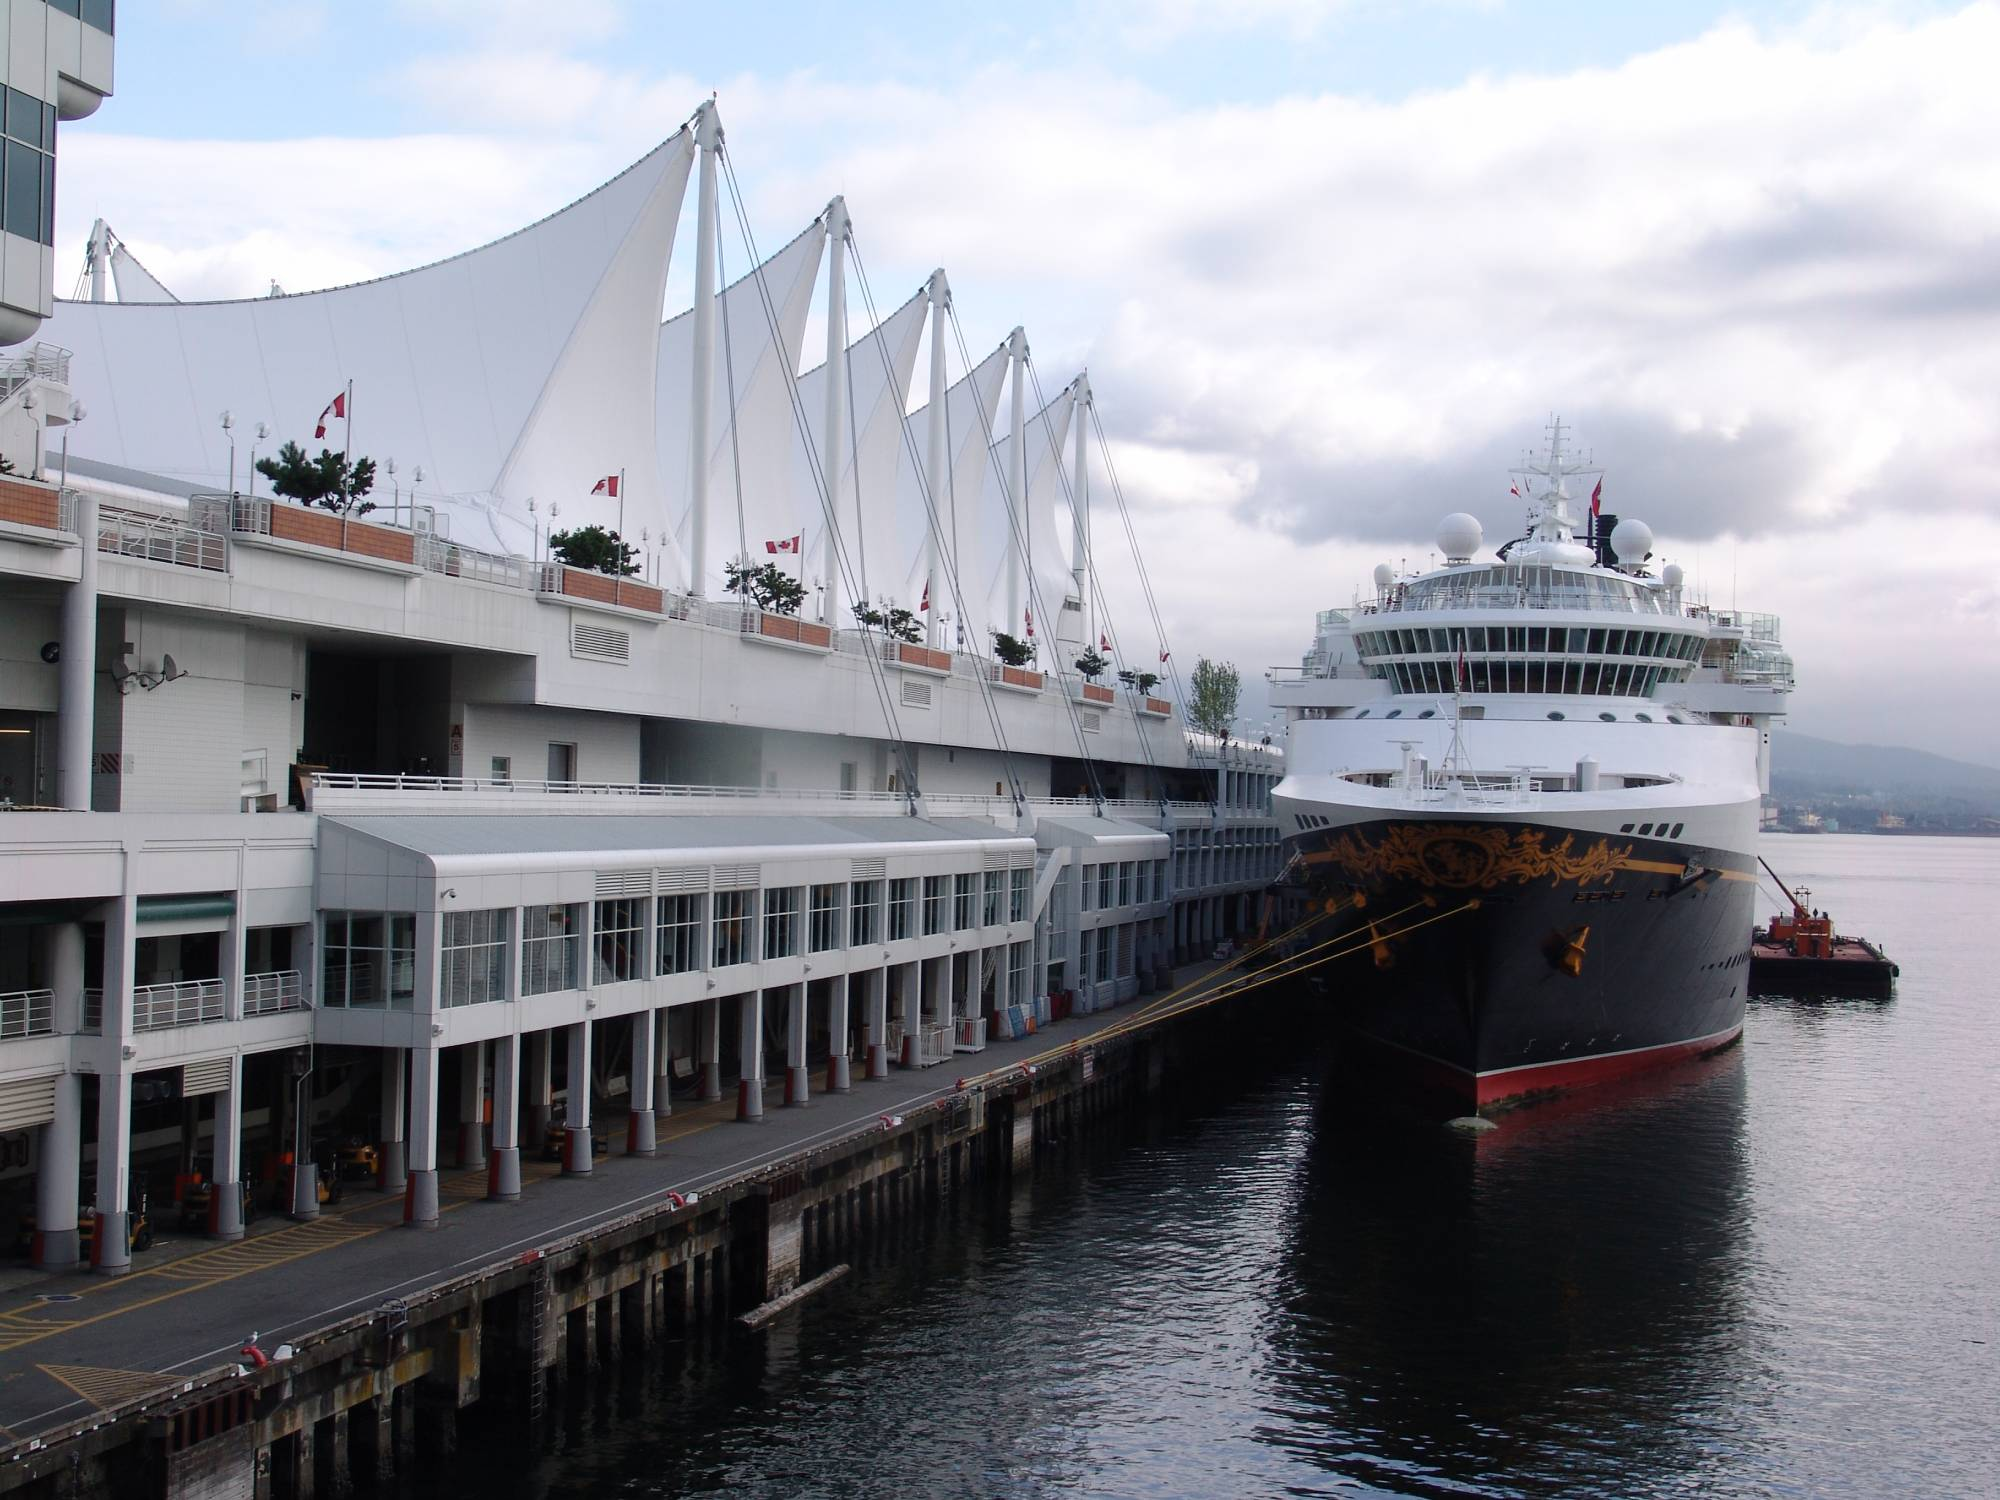 Alaskan cruise - Wonder moored at Vancouver photo